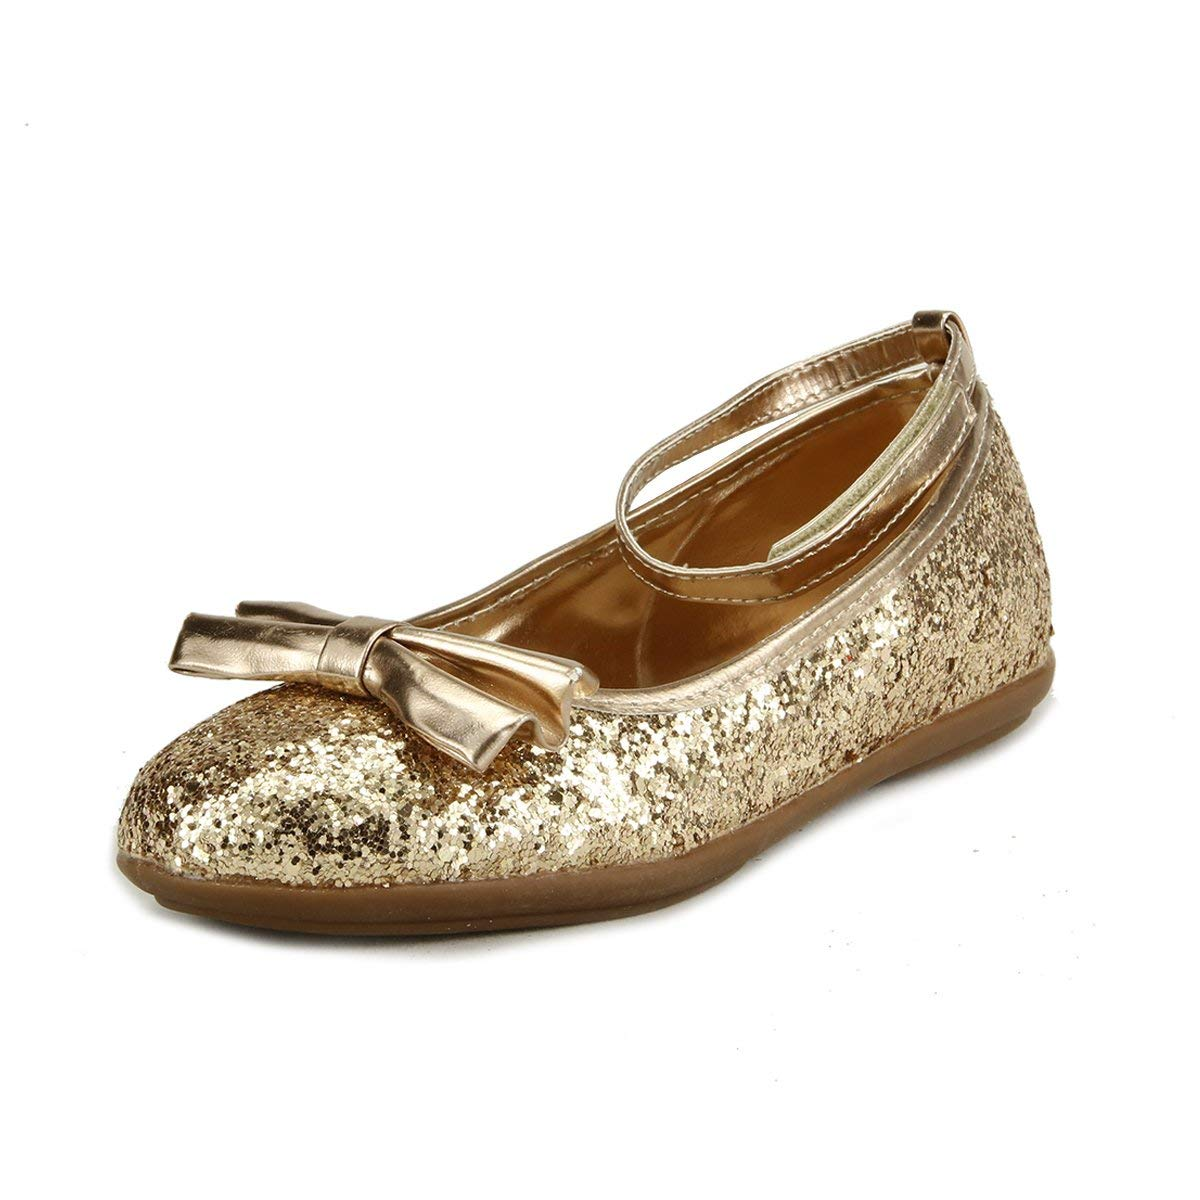 skyhigh Girl's Sparkly Wedding Party Dress Shoes 4 Colors Ankle Wrap Toddler Size (10, Gold)